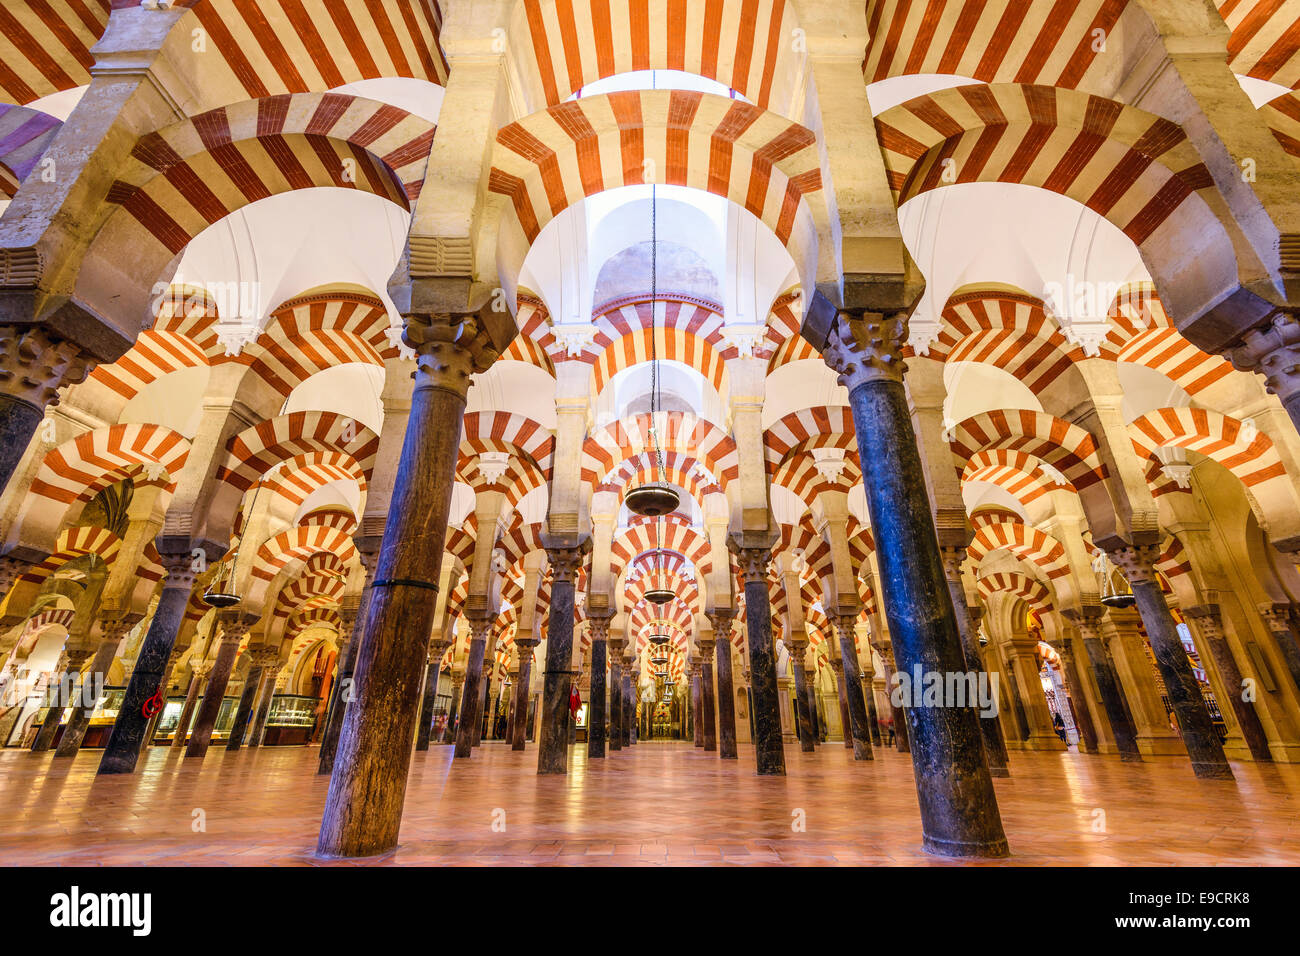 CORDOBA, SPAIN - CIRCA 2014: Mosque-Cathedral of Cordoba. The site underwent conversion from a church to a mosque - Stock Image